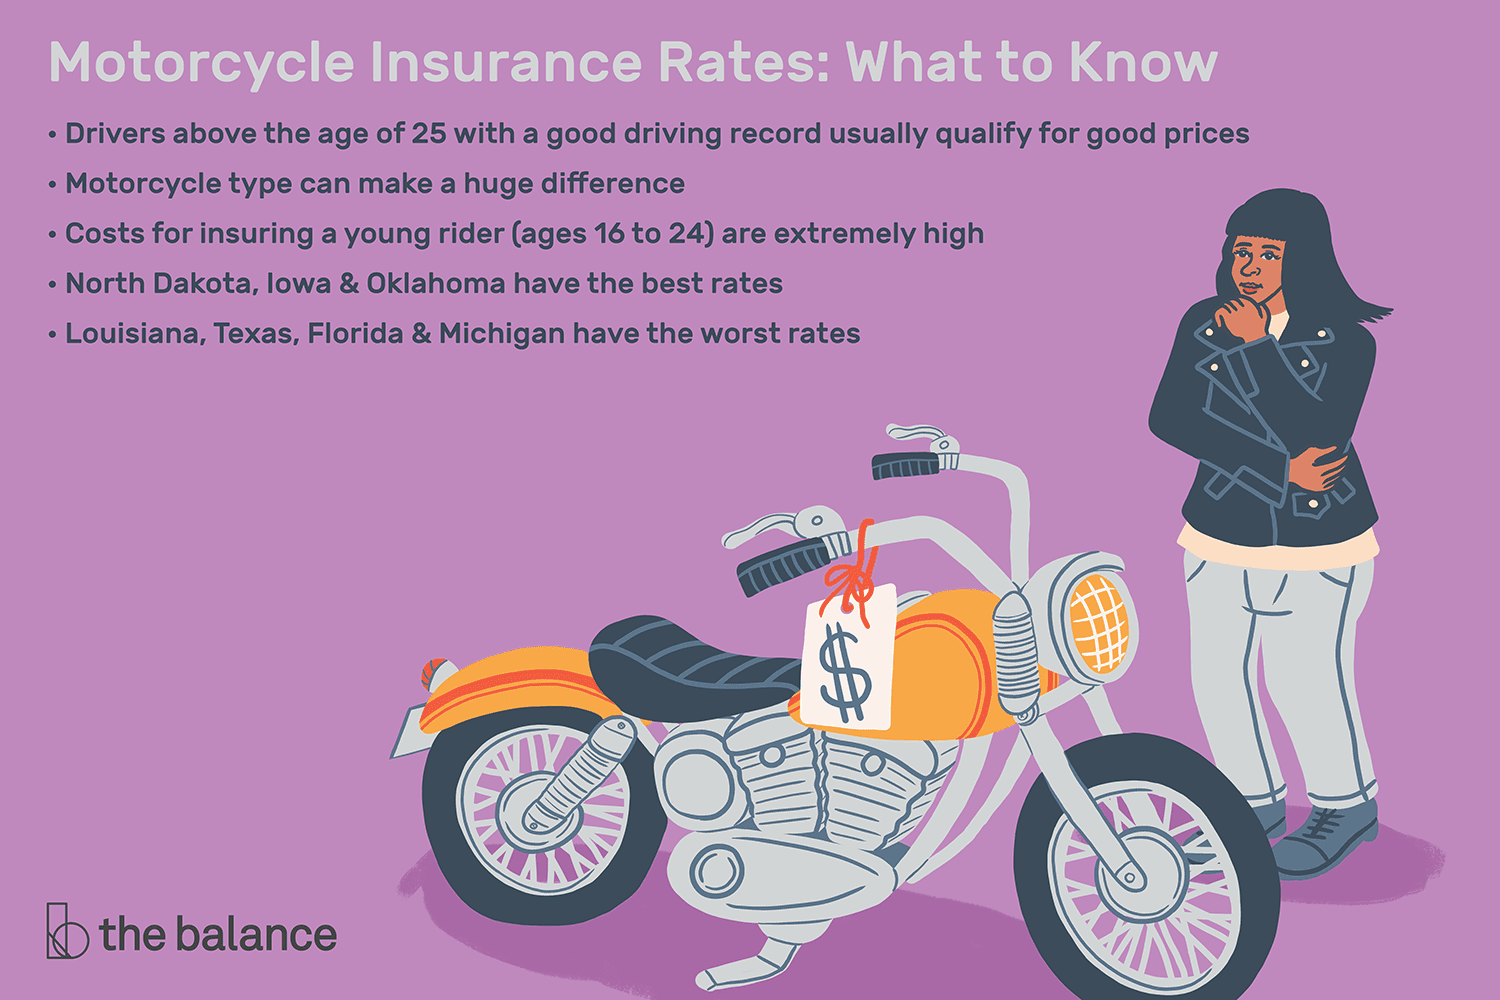 What Is The Average Motorcycle Insurance Cost